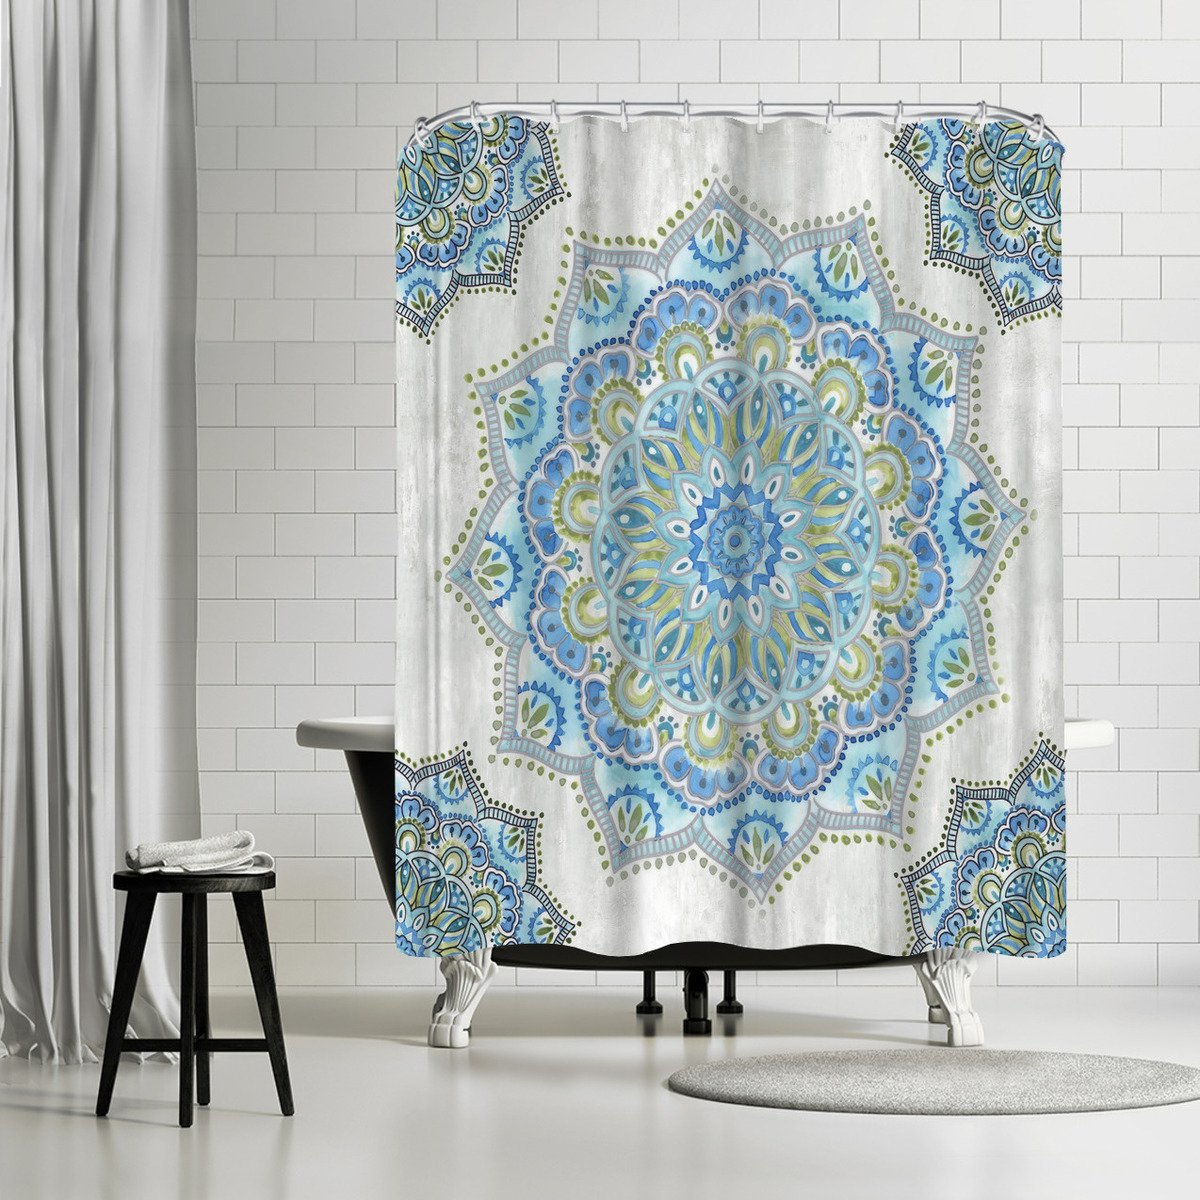 Array Ii by PI Creative Art Shower Curtain - Shower Curtain - Americanflat